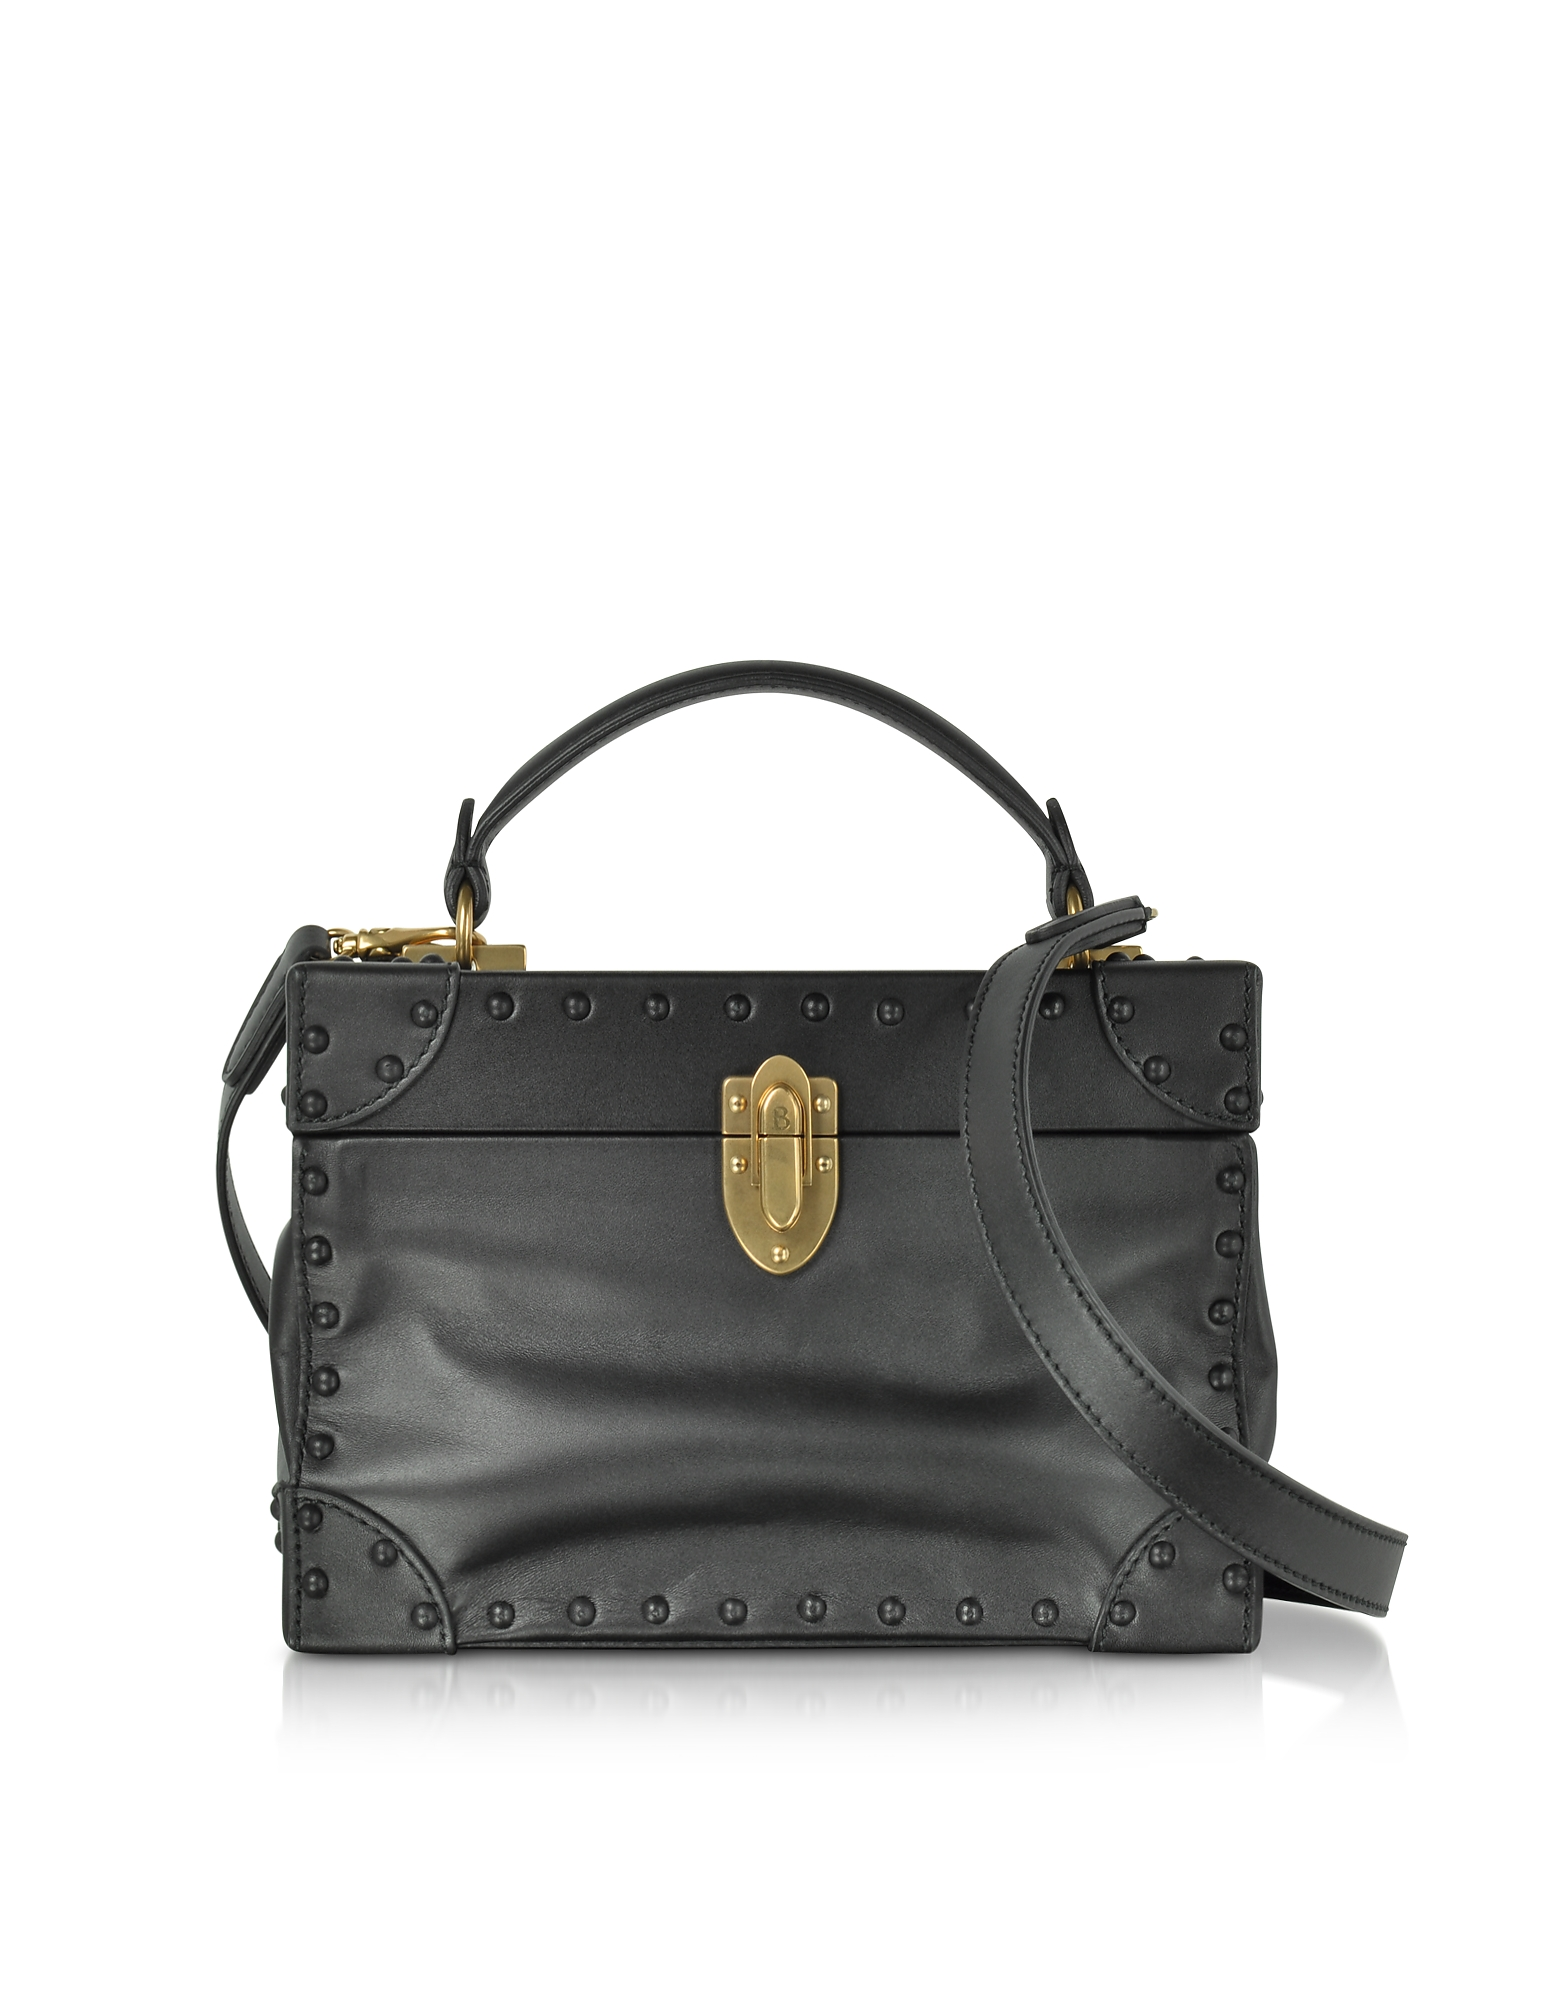 Bertoni 1949 Handbags, Black Leather Soft Bertoncina Satchel Bag w/French Leather Covered Studs